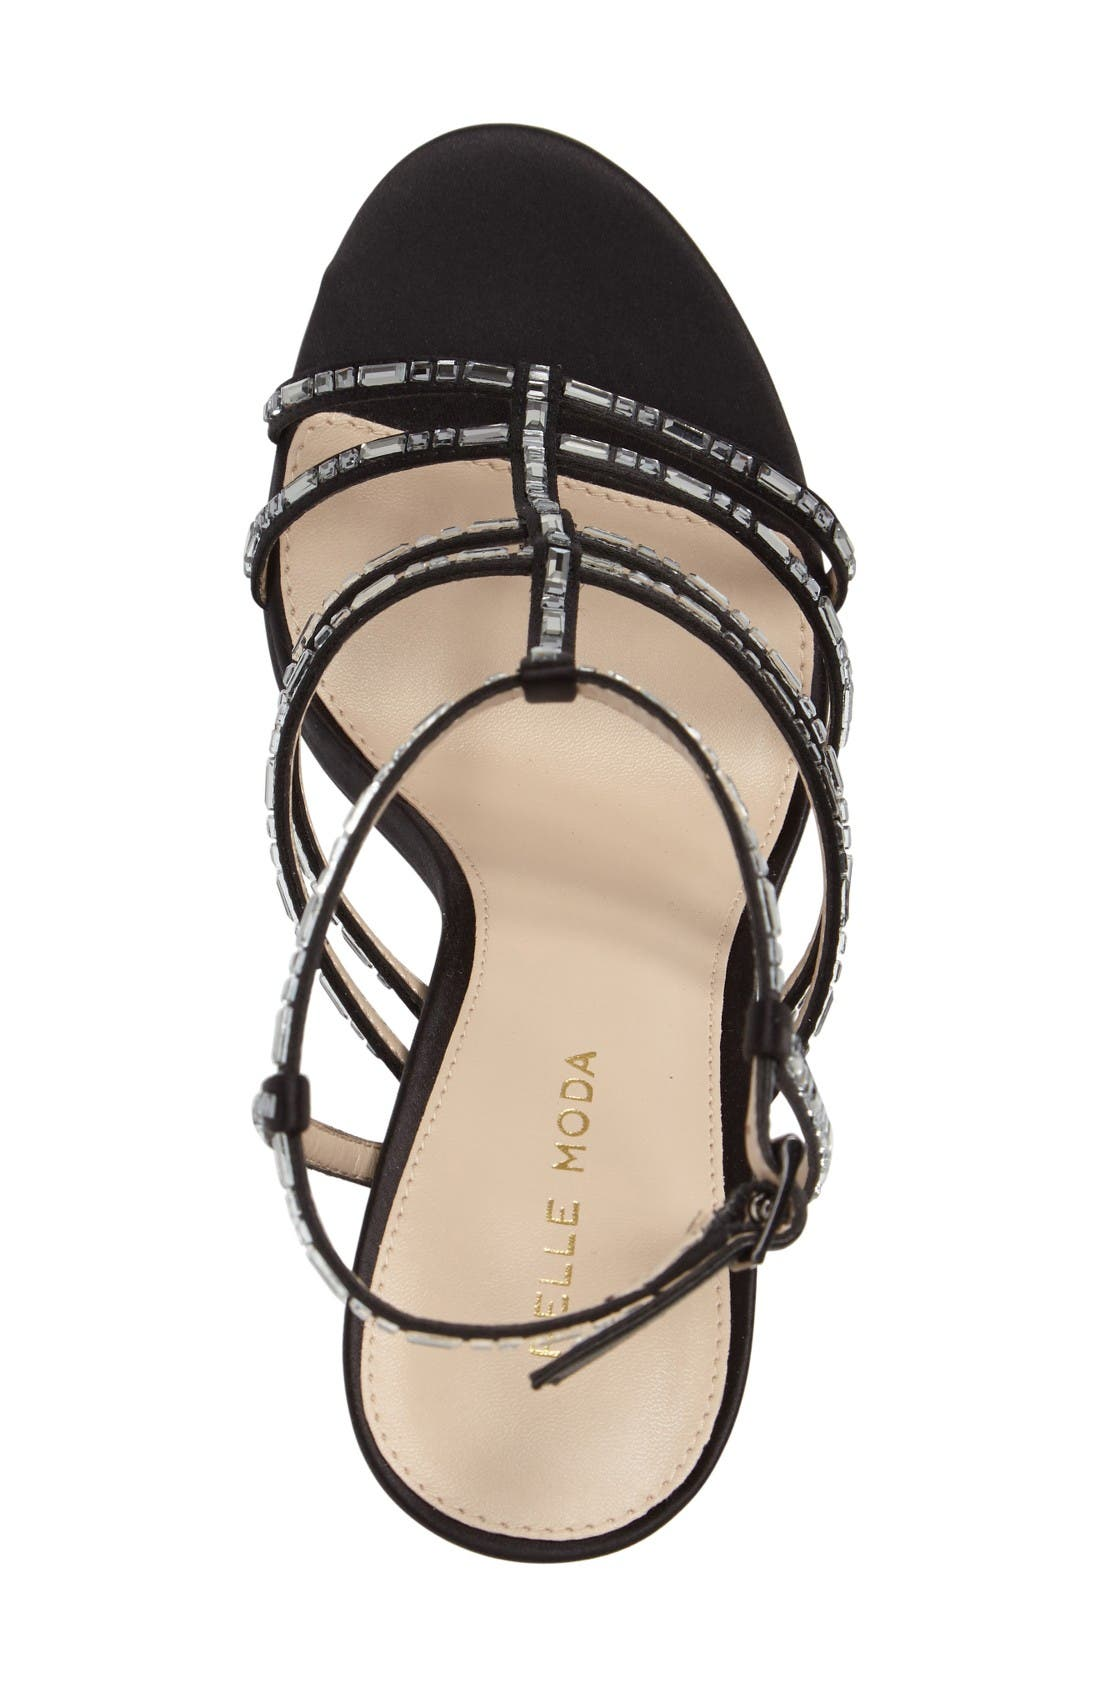 Essey 2 Sandal,                             Alternate thumbnail 3, color,                             Black Leather